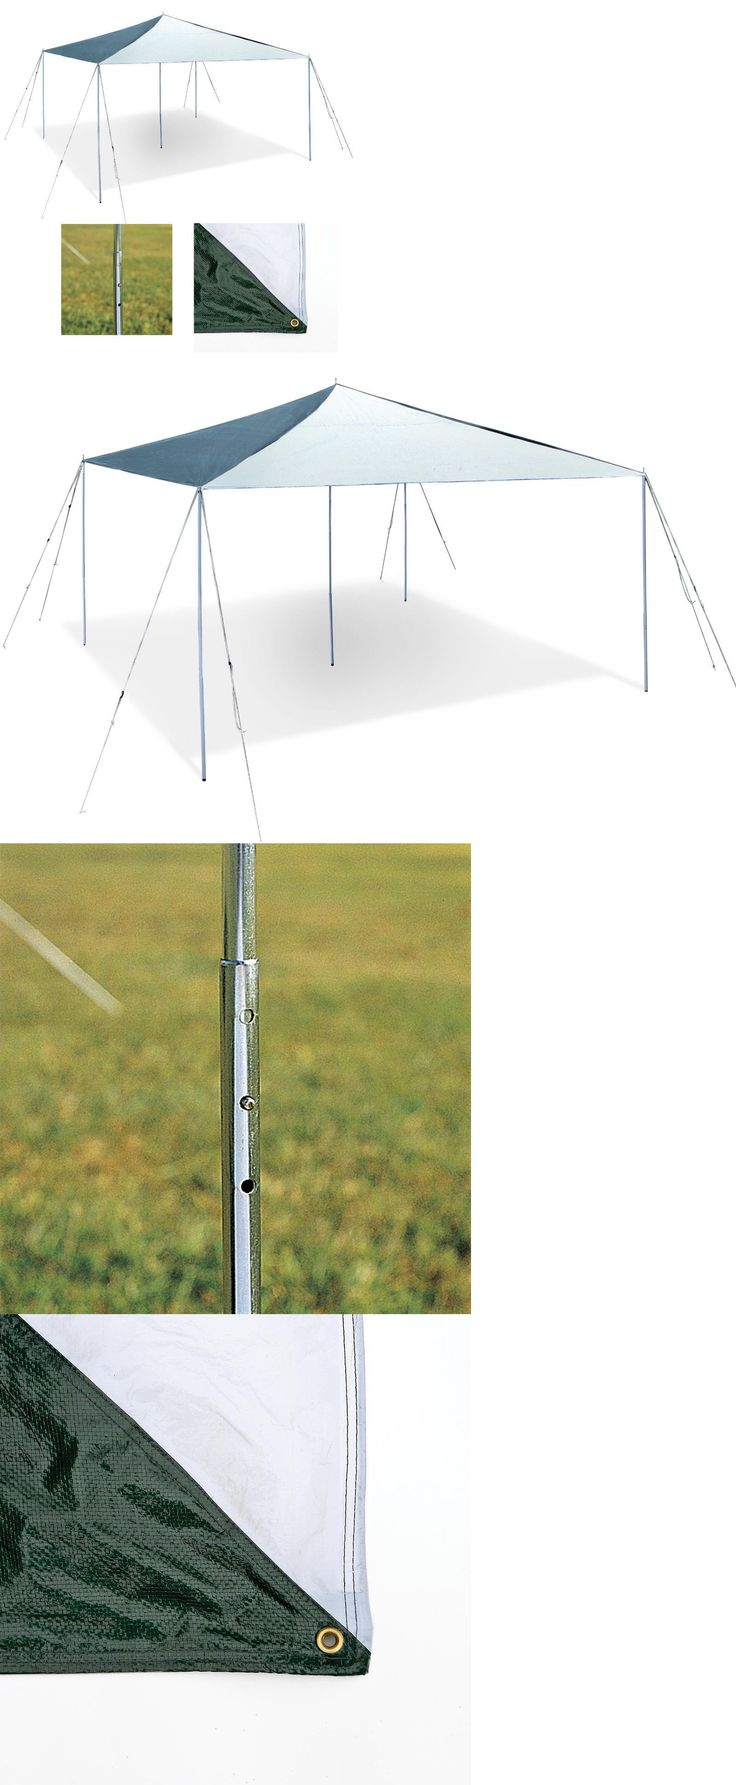 canopies and shelters instant canopy tent 12x12 outdoor gazebo patio beach sun shade for - 12x12 Canopy